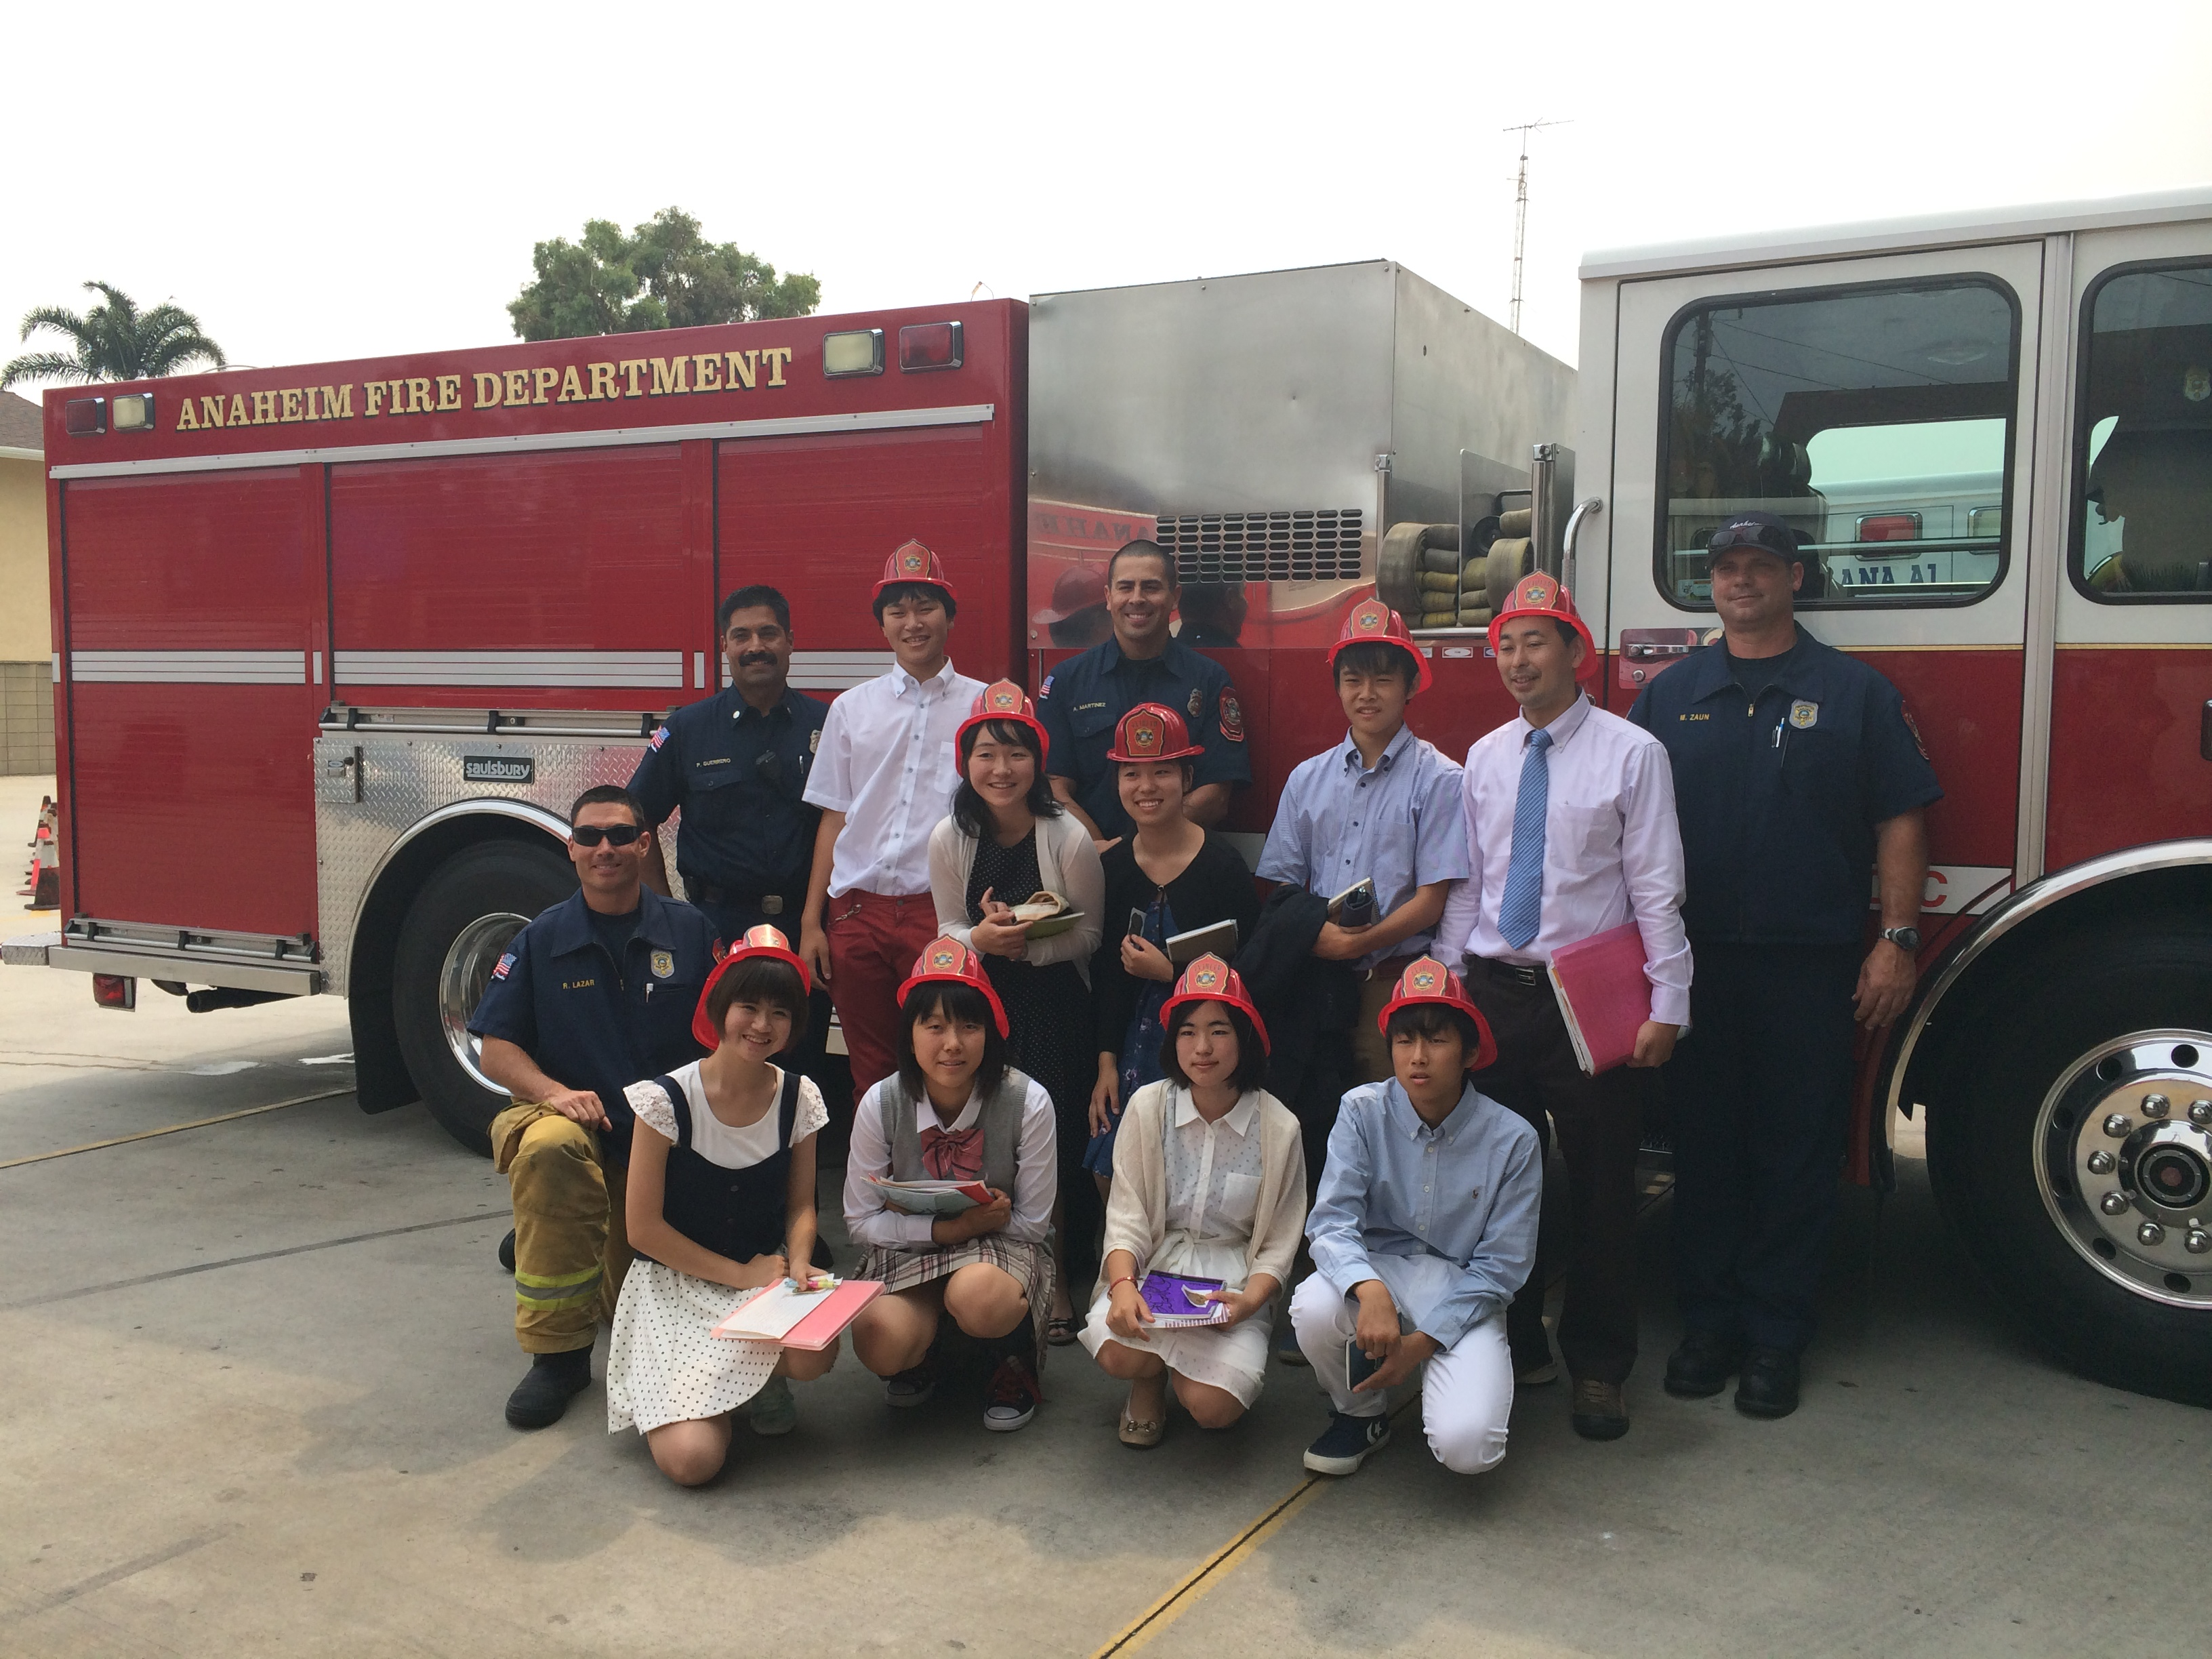 Students taking a group photo with the Anaheim Fire Department in front of their fire truck.